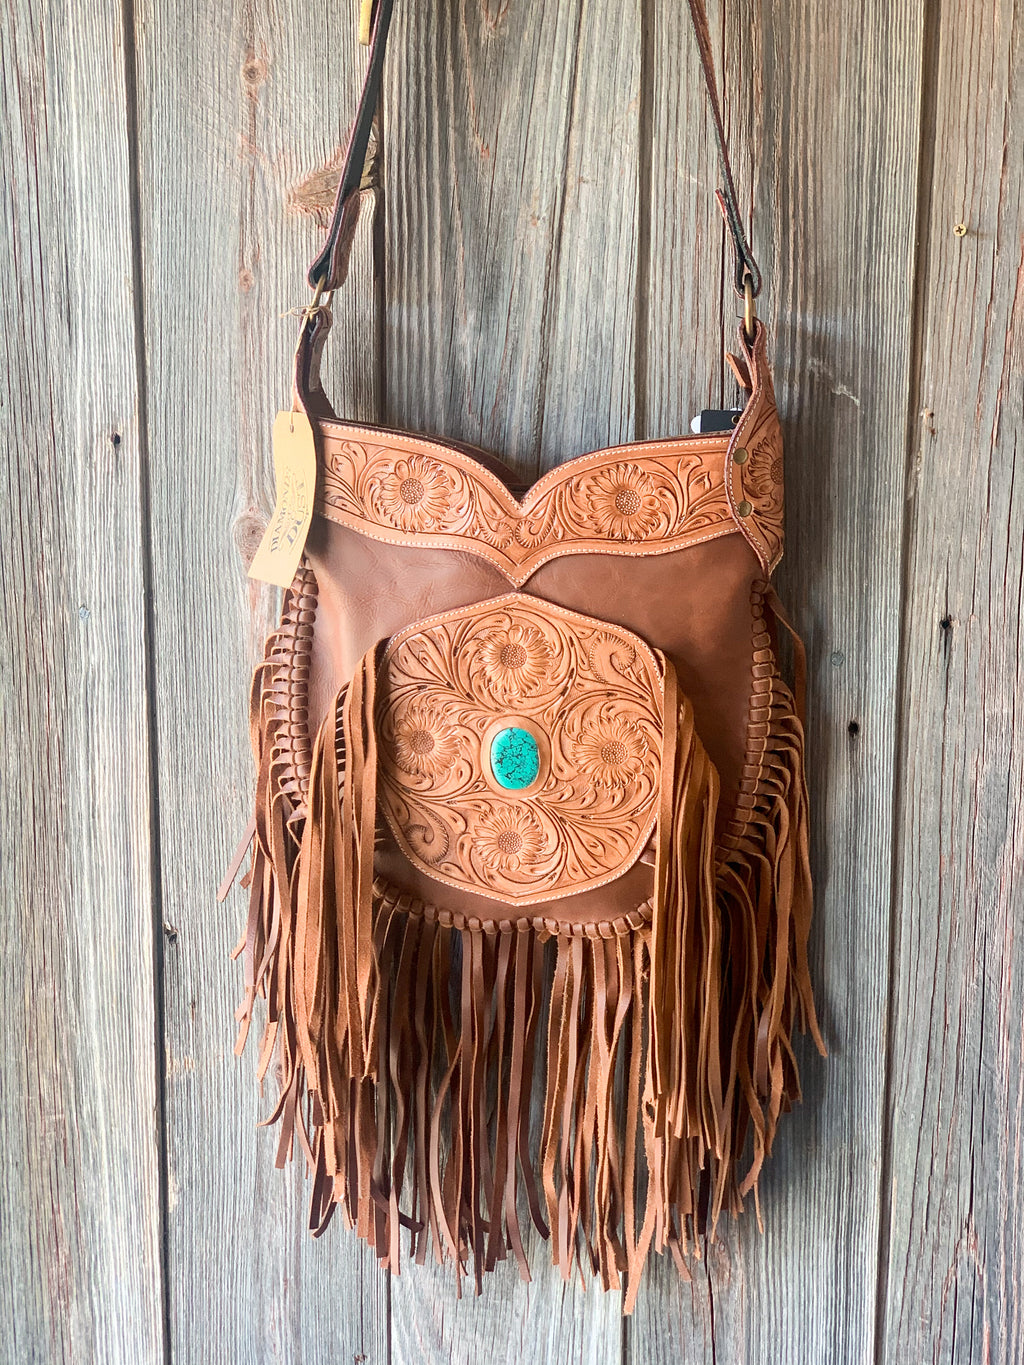 Wild West Saddlebag Purse